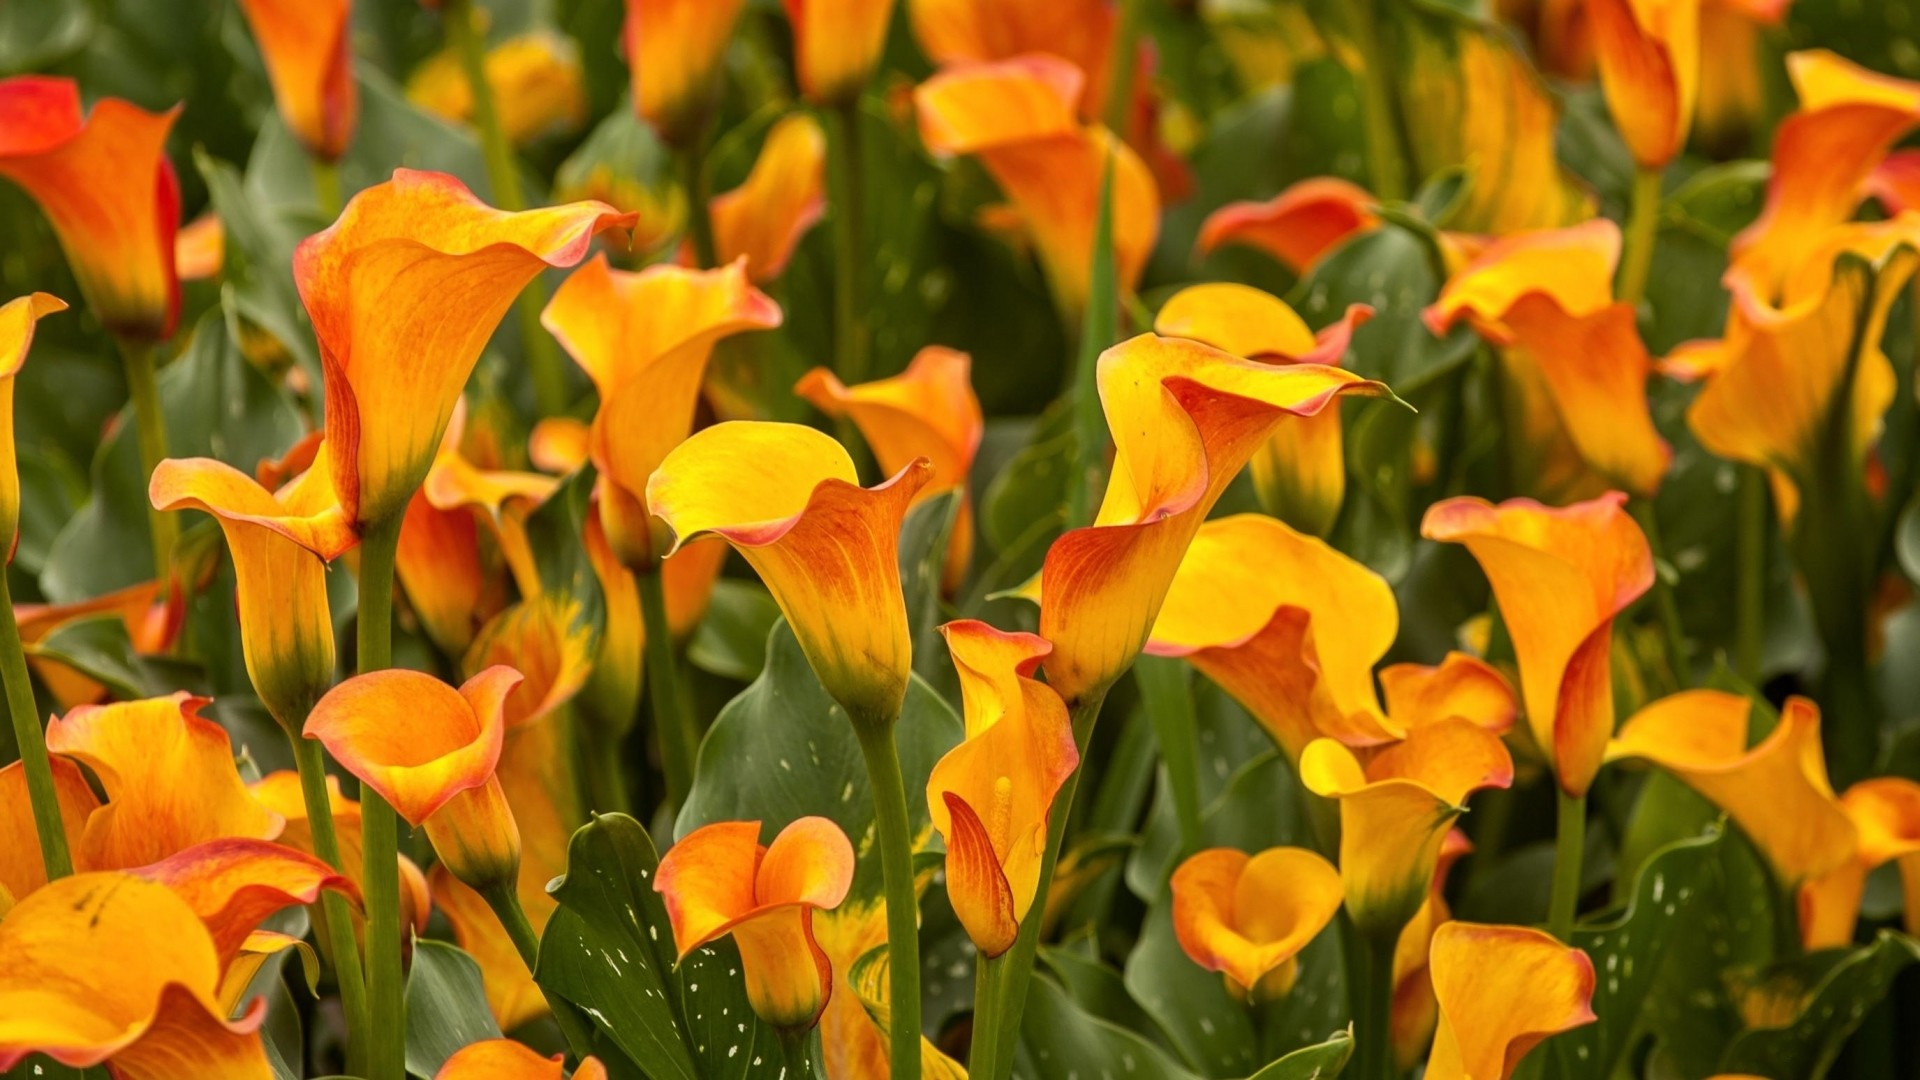 1920x1080 Preview wallpaper calla lilies, flowers, bright, close-up, flowerbed